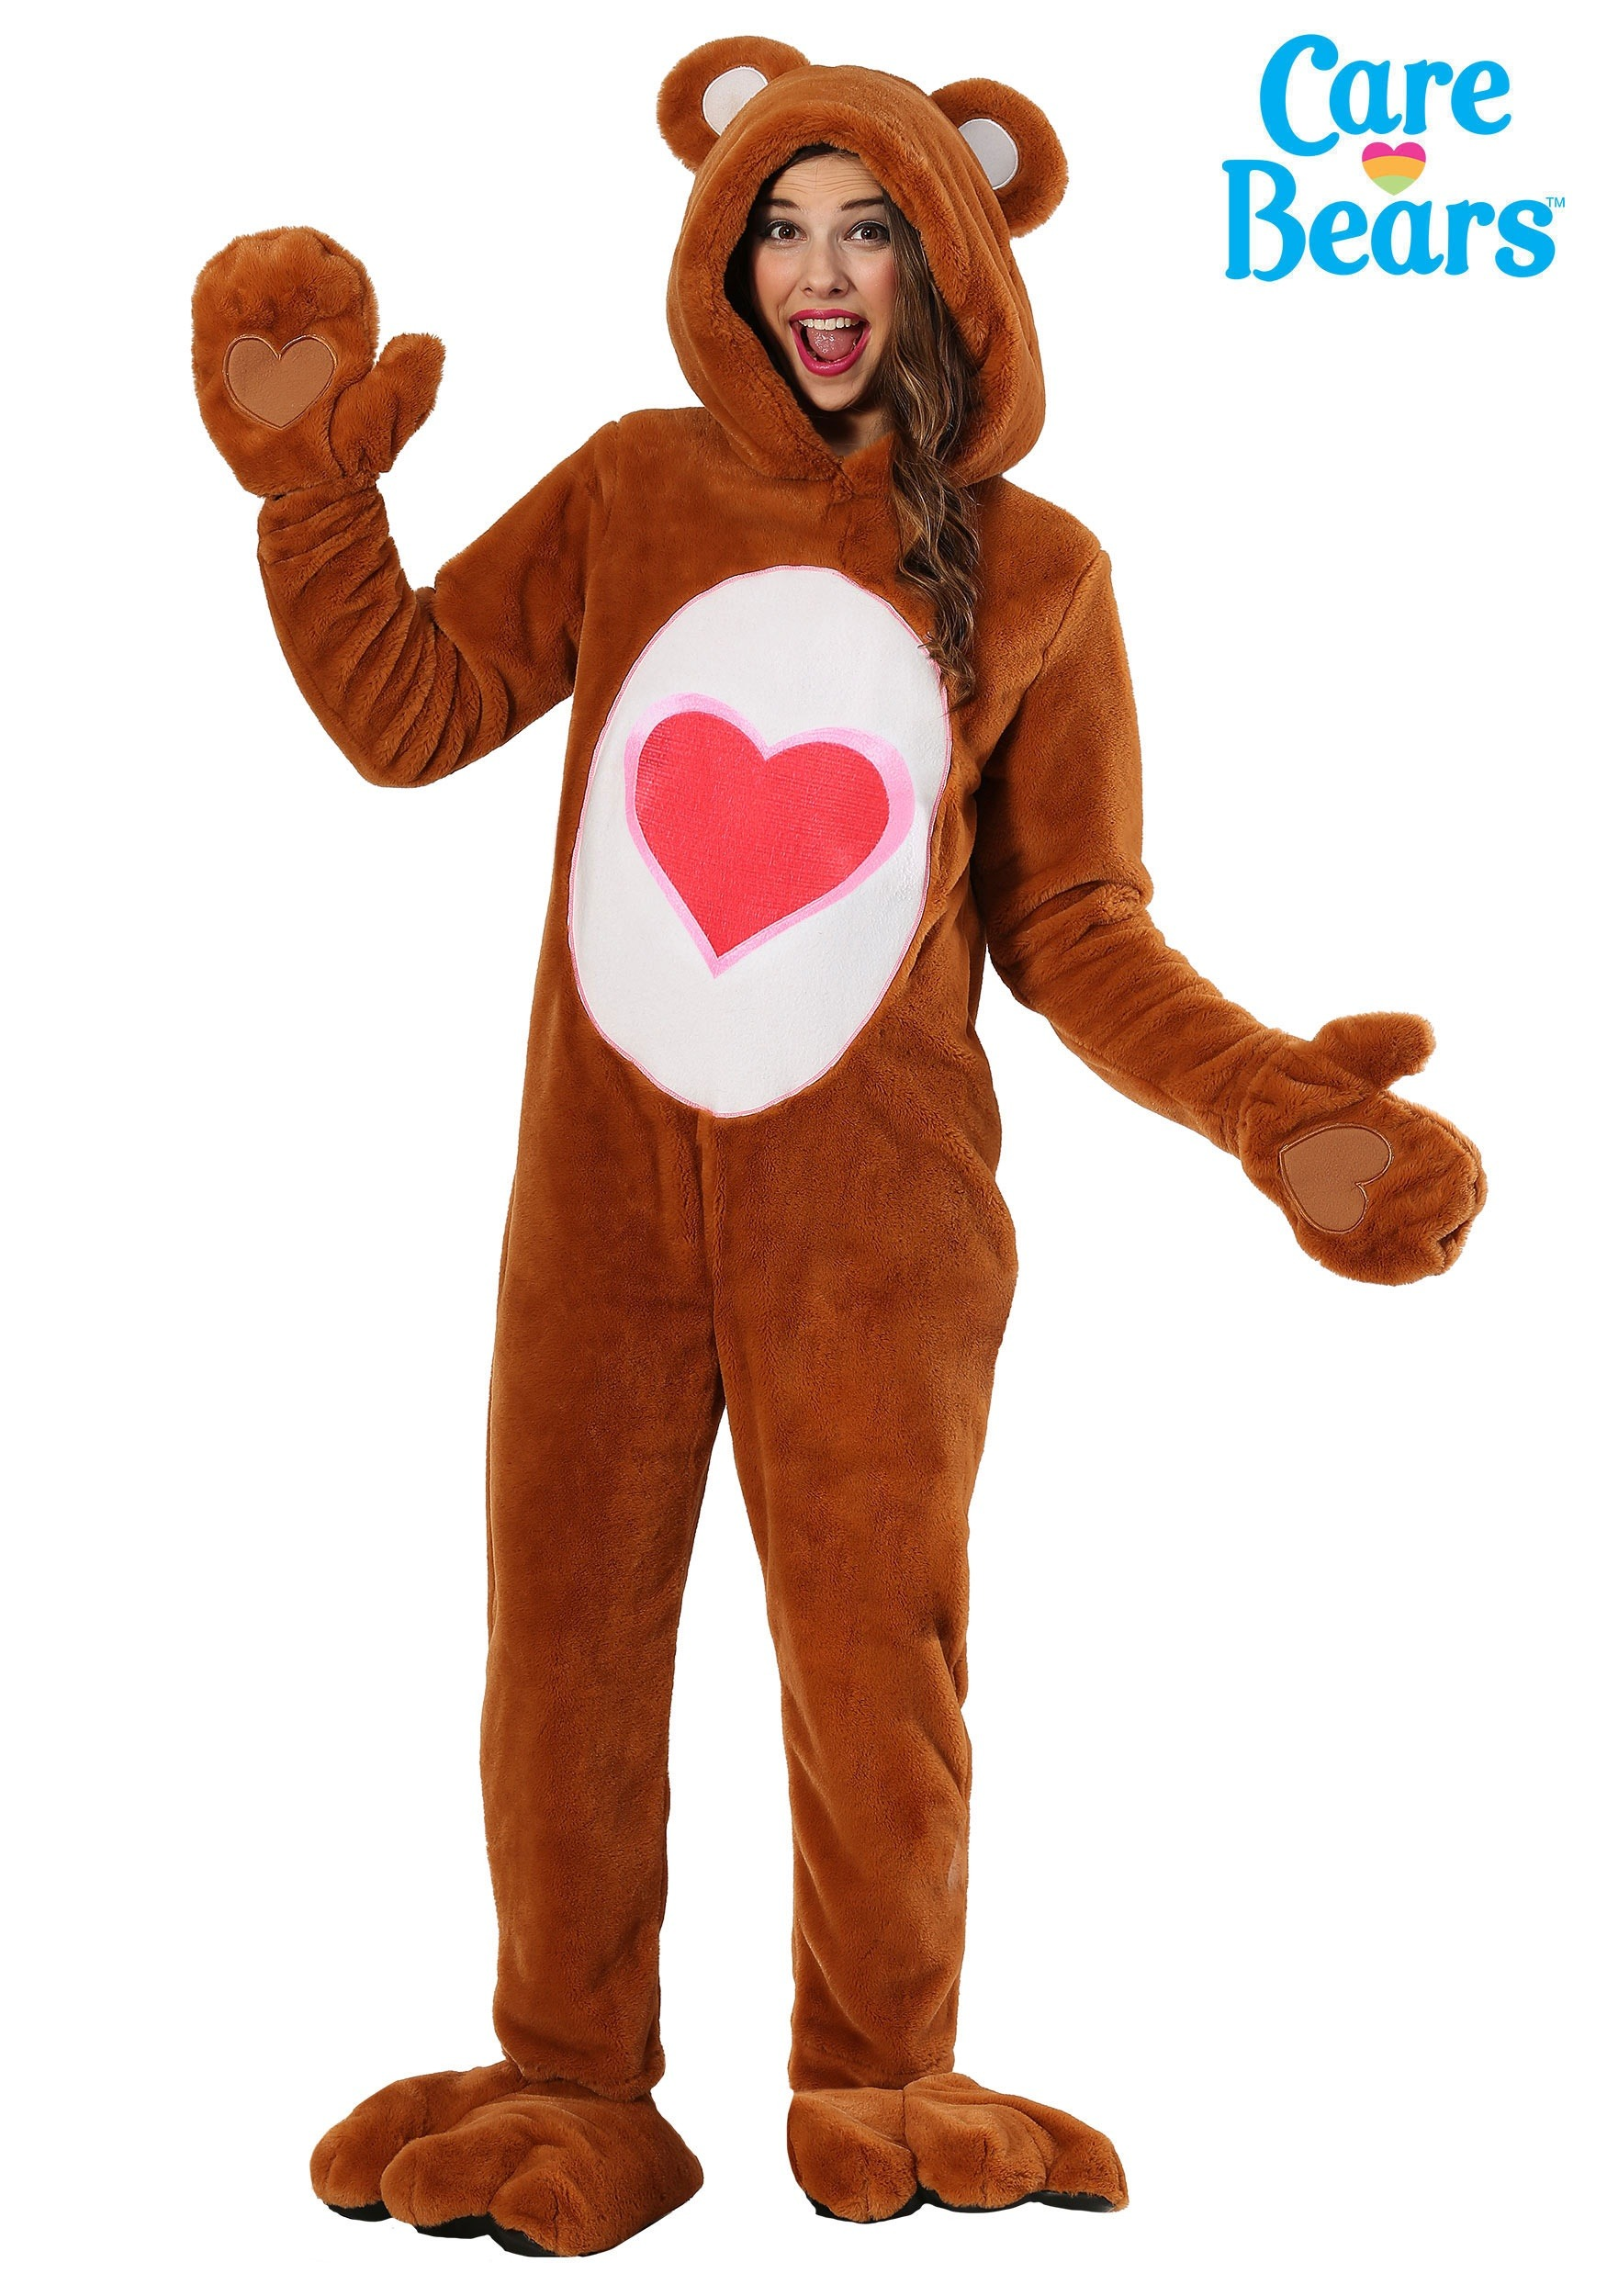 Adult care bear costumes